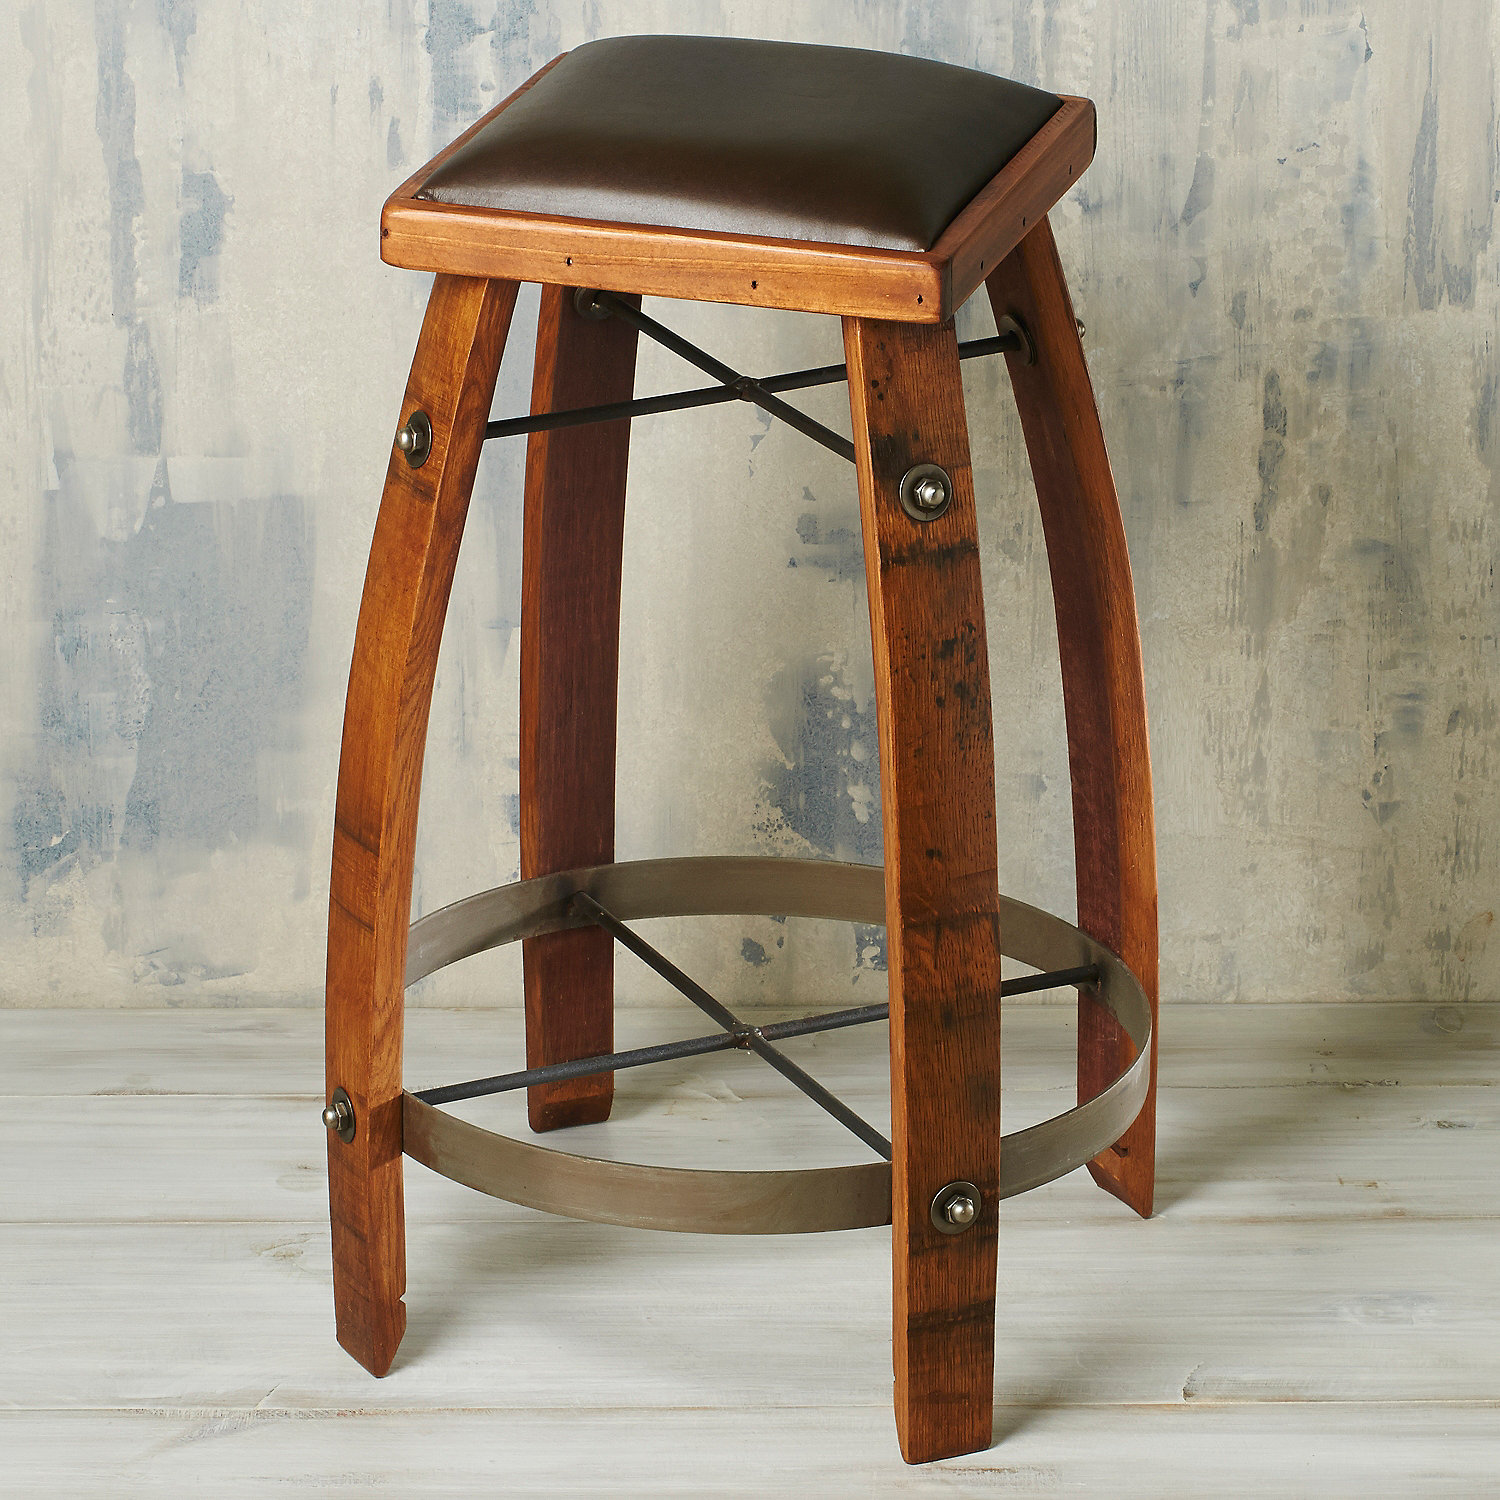 Vintage Oak Wine Barrel Bar Stool 28 Inches with Chocolate Leather